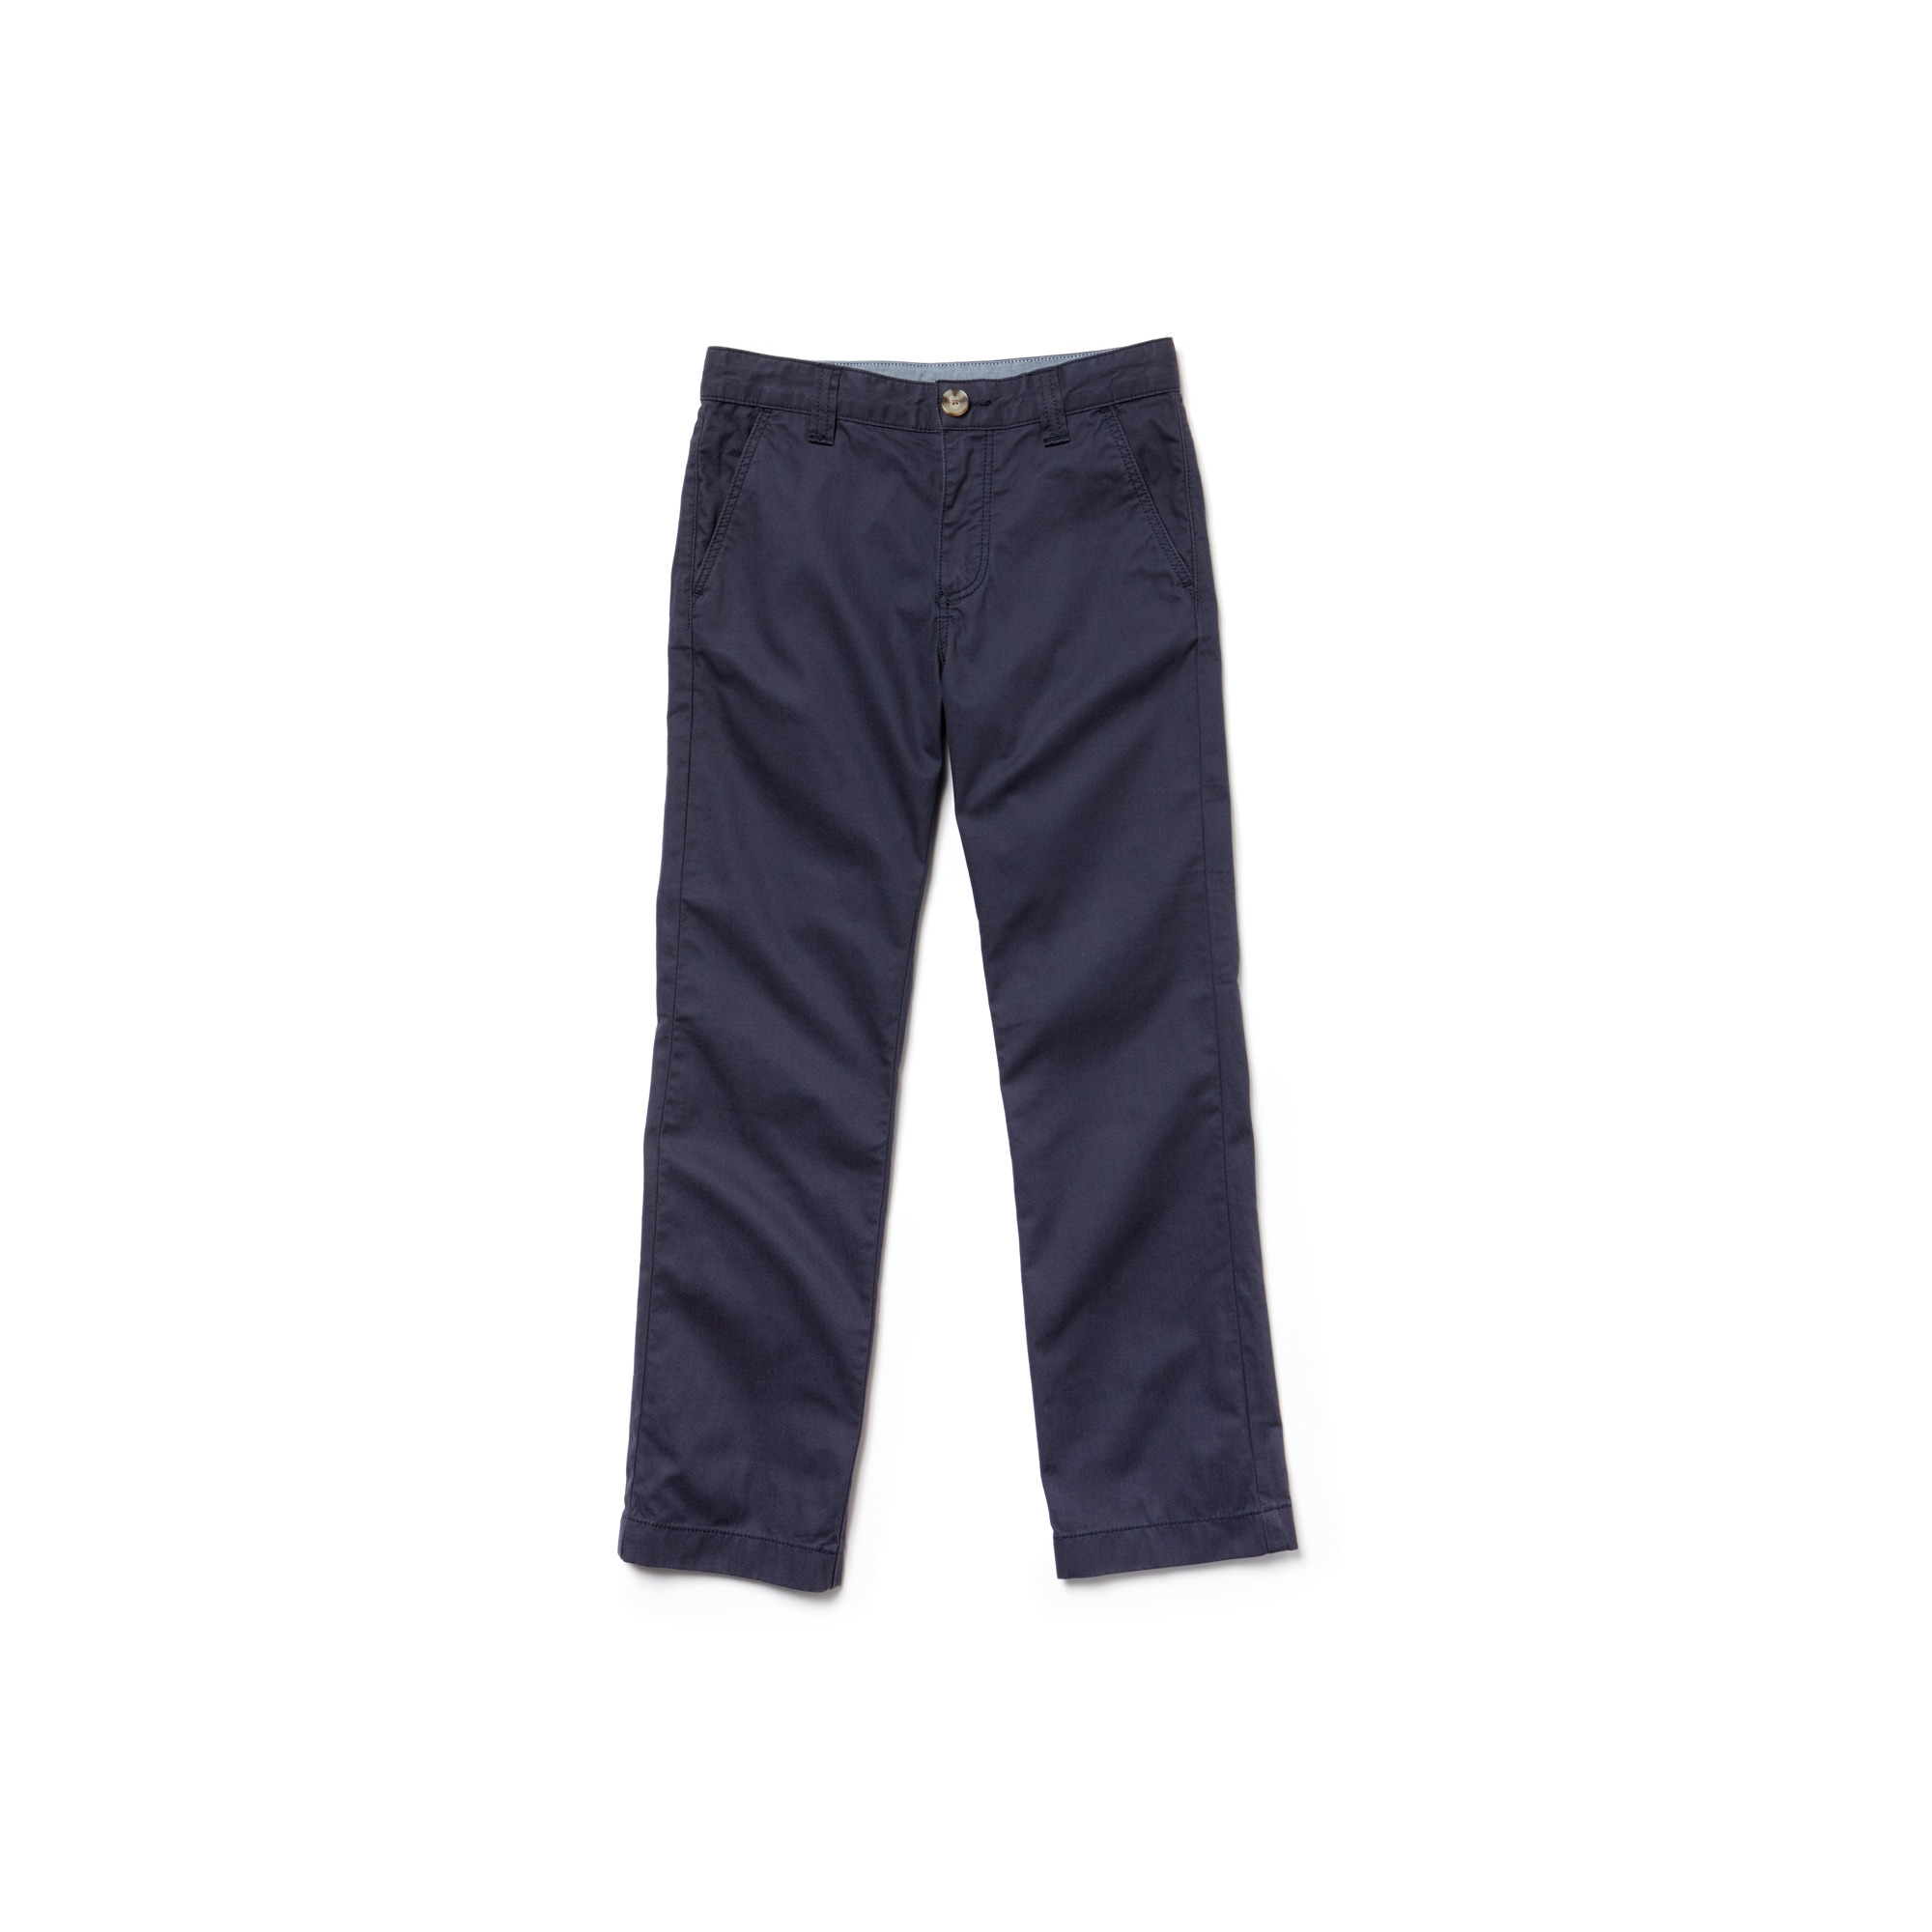 Kids Chino pants in colored cotton gabardine